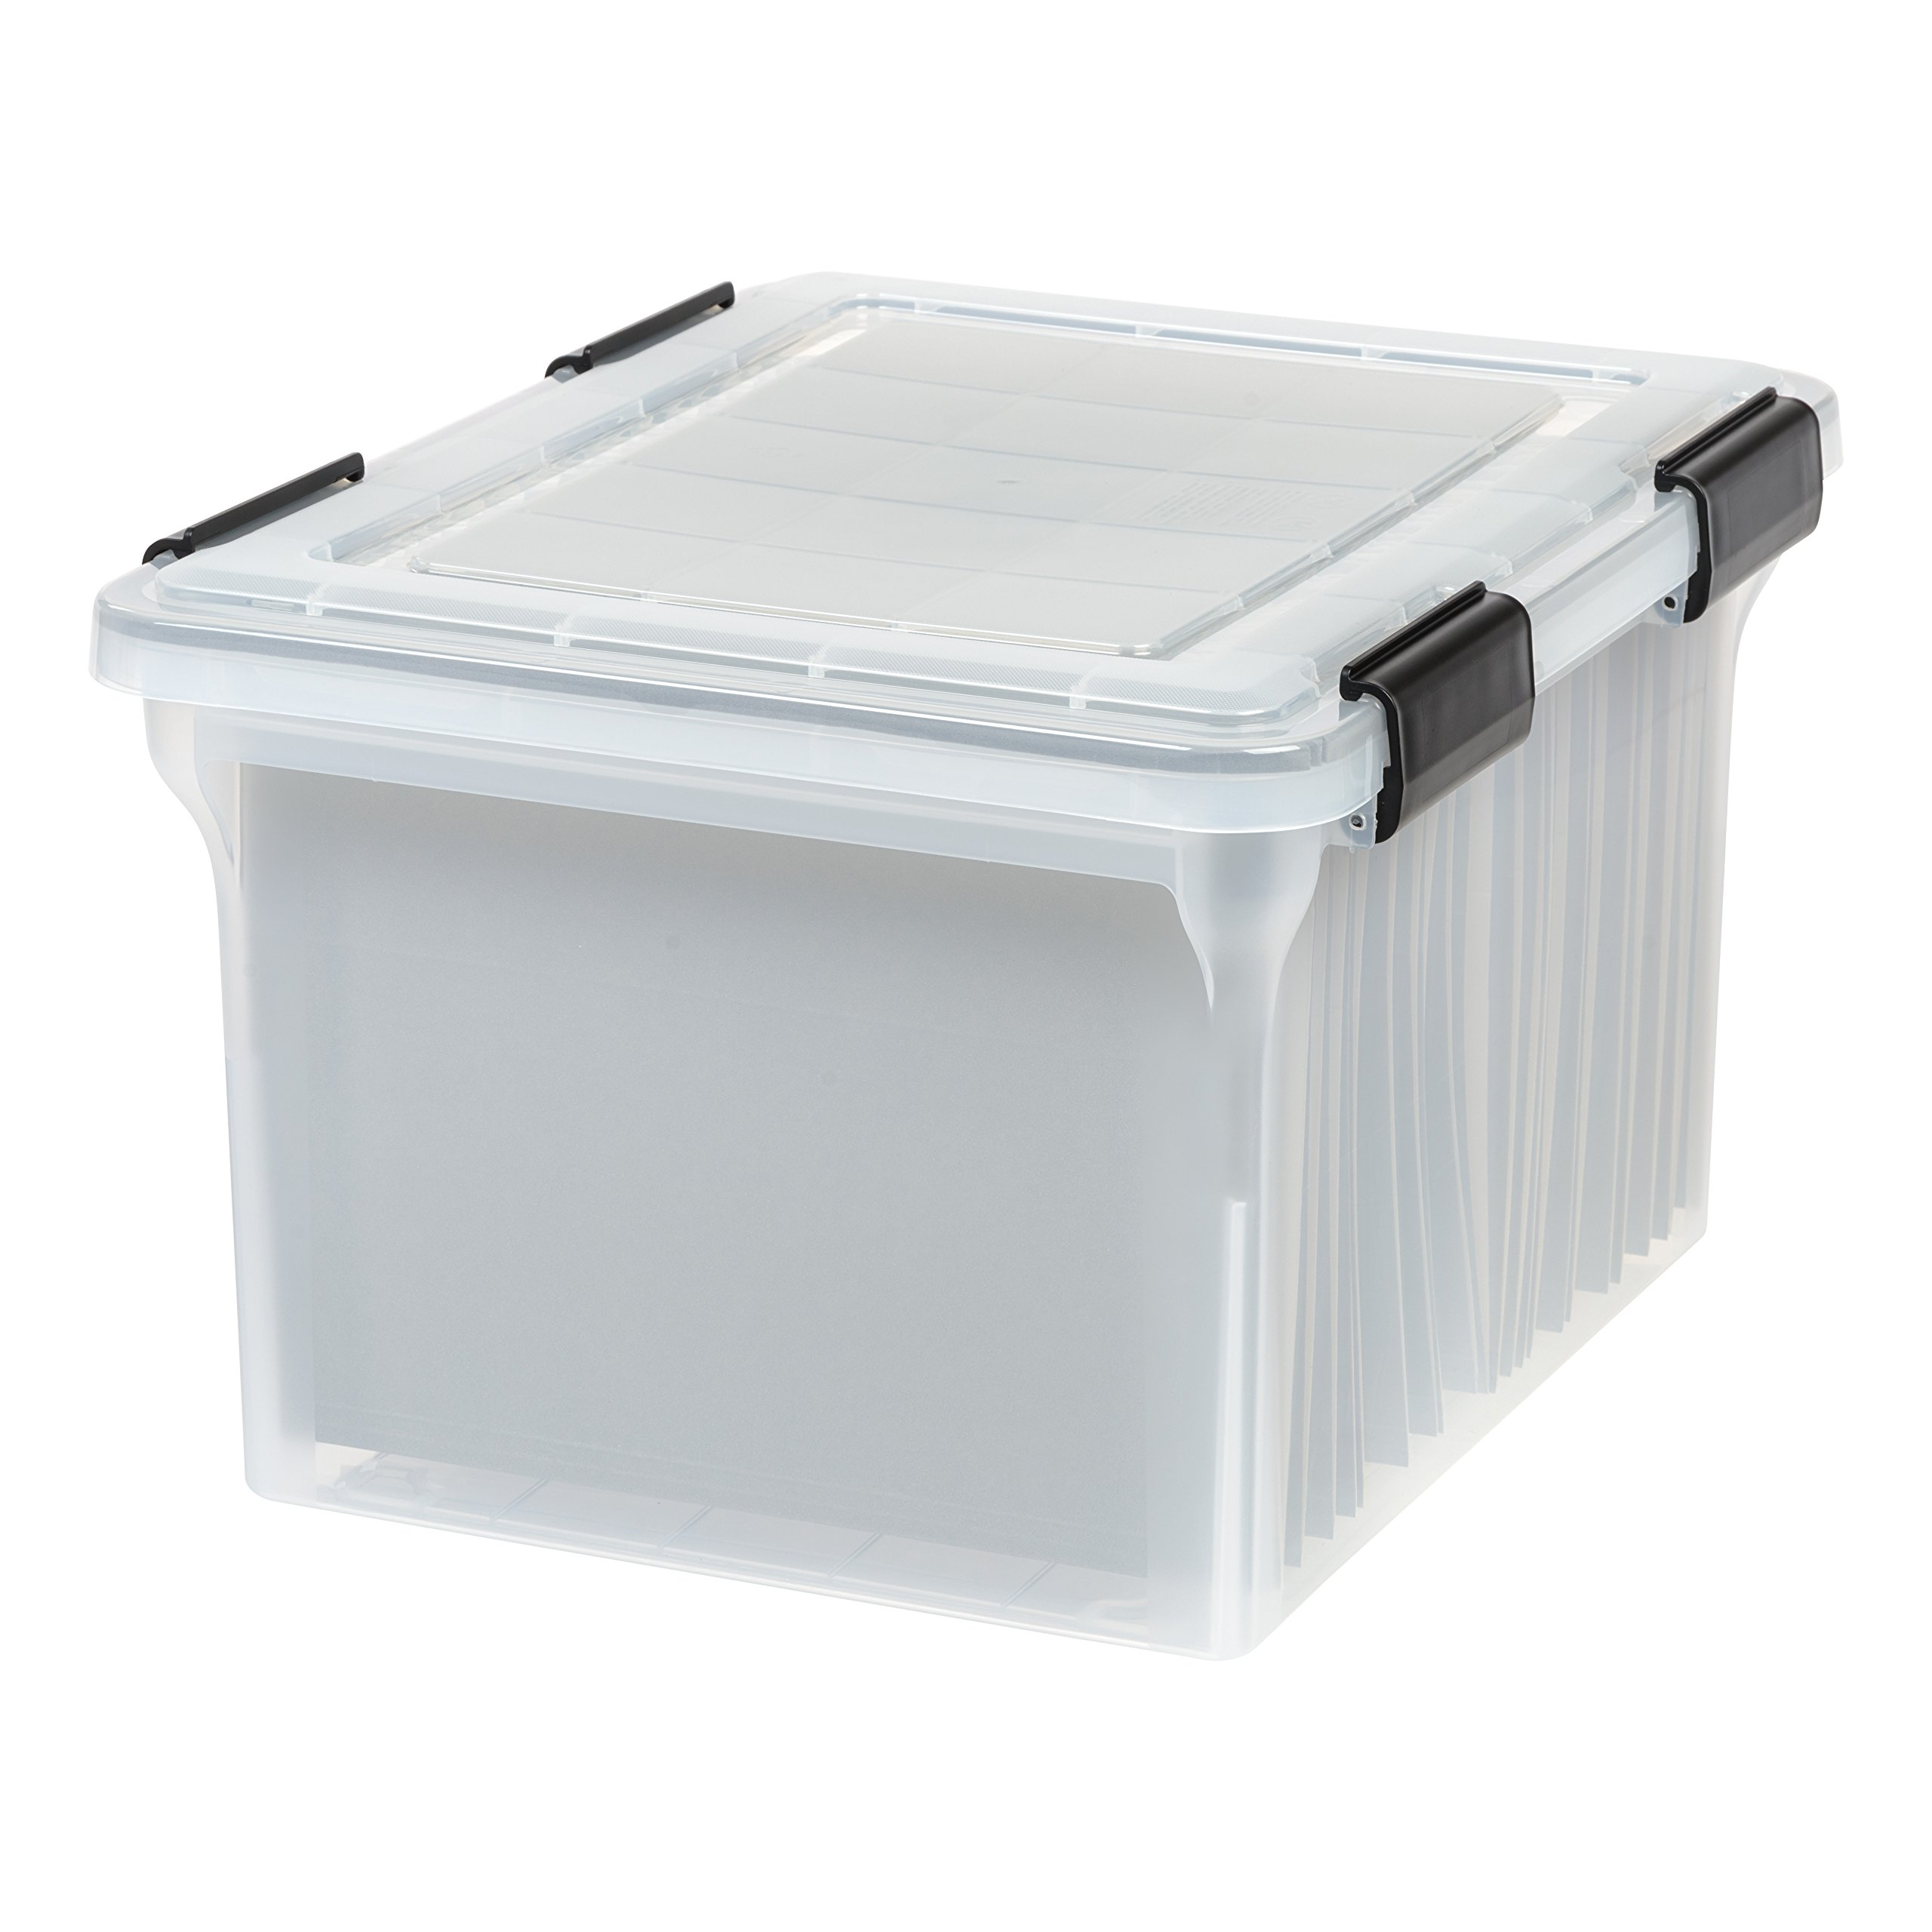 IRIS Letter and Legal Size WEATHERTIGHT File Box, Clear by IRIS USA, Inc. (Image #1)